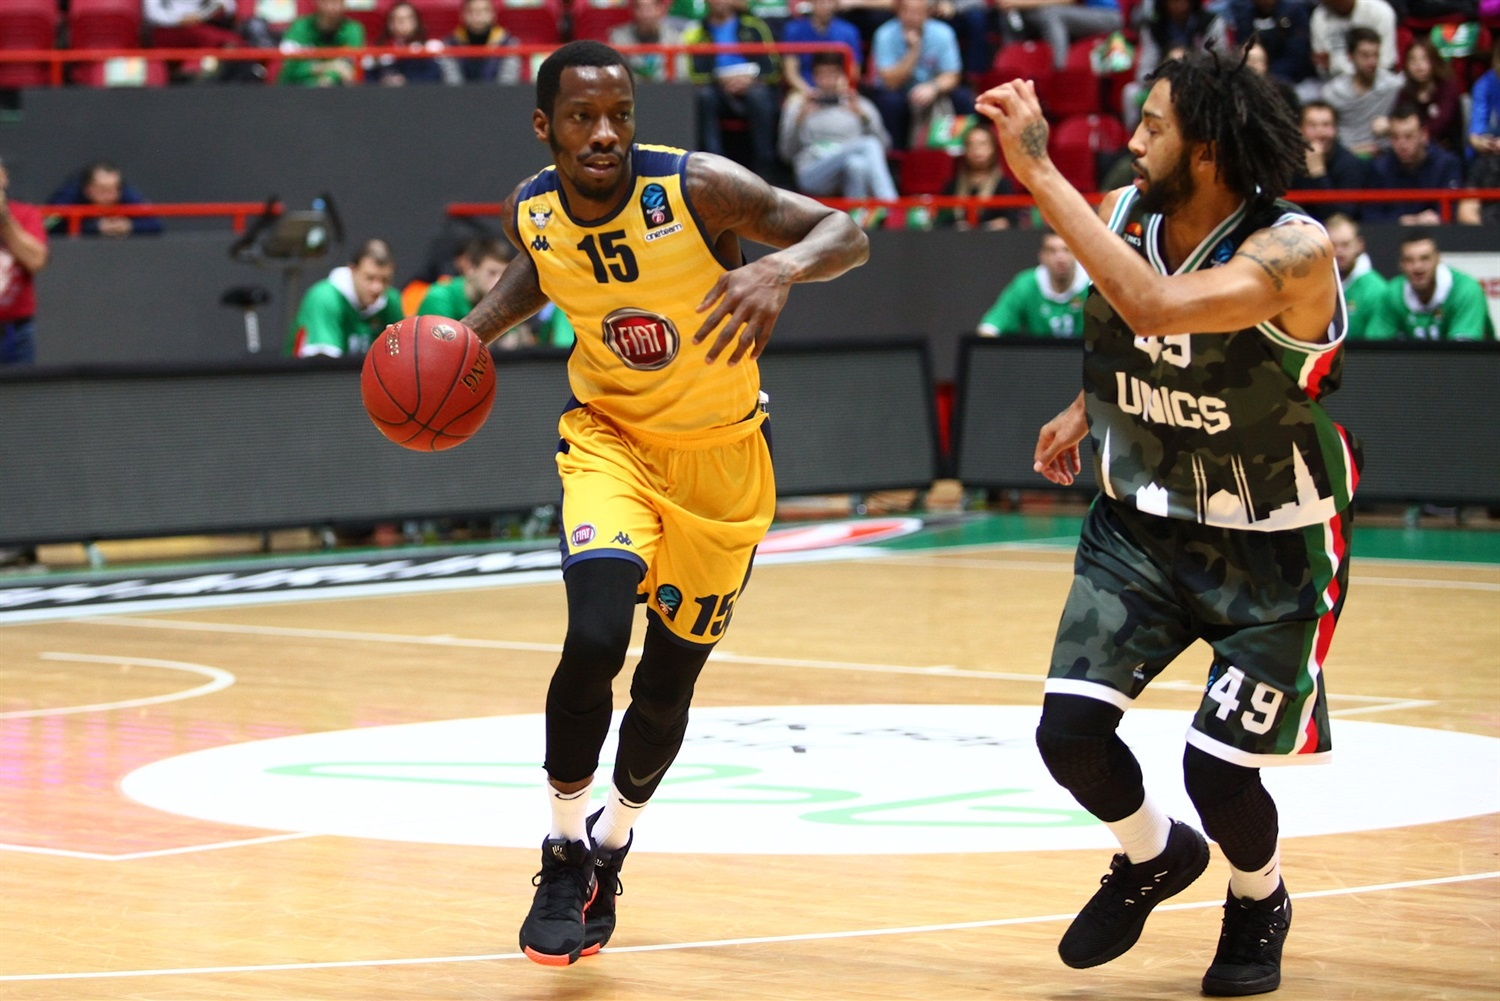 Tyshawn Taylor - Fiat Turin (photo UNICS) - EC18